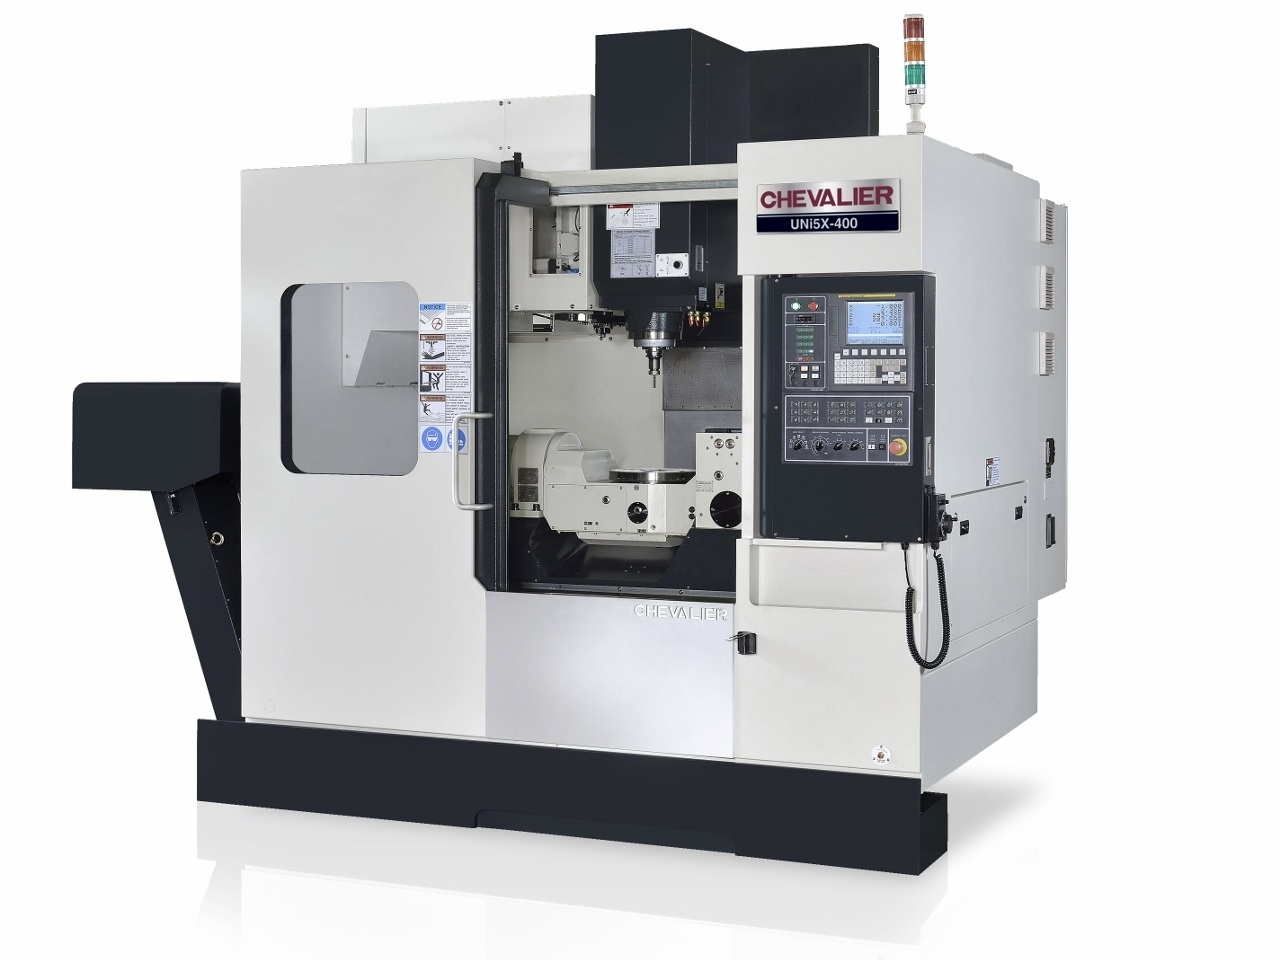 """Uni5X-400 $154,800 - HP: 20RPM: 12,000Machining Capacity: 15.7 X 13.7"""" HControl: Fanuc Oi MF Mold PackageAccessories & Options: CT40, big plus spindle, roller way, 30 ATC, chips flush, spindle oil chiller, internal chip augers, chip conveyor, CTS prep, Fanuc Mold package"""